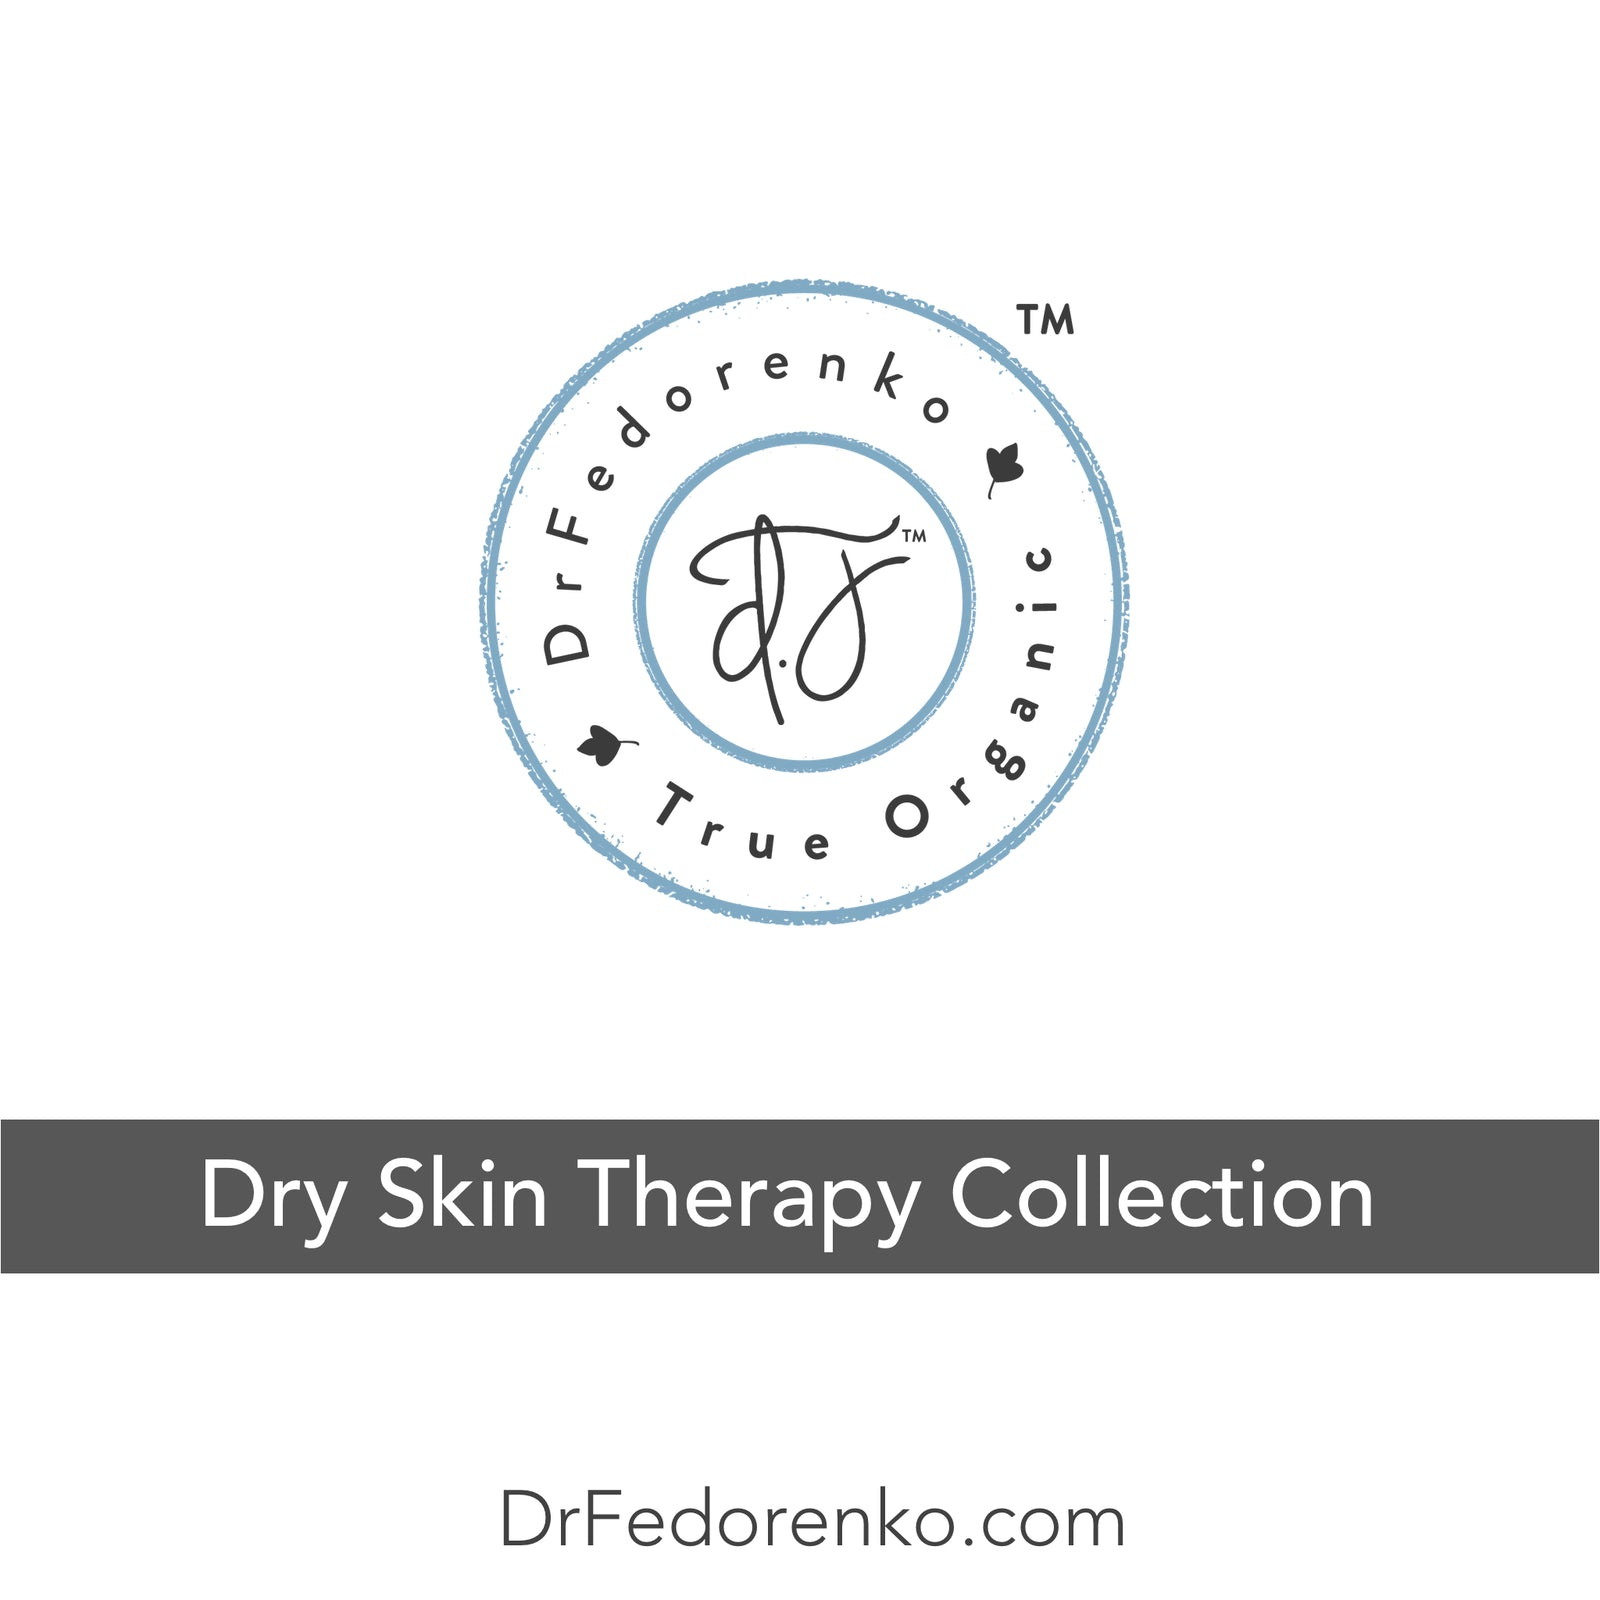 Dry Skin Therapy Collection